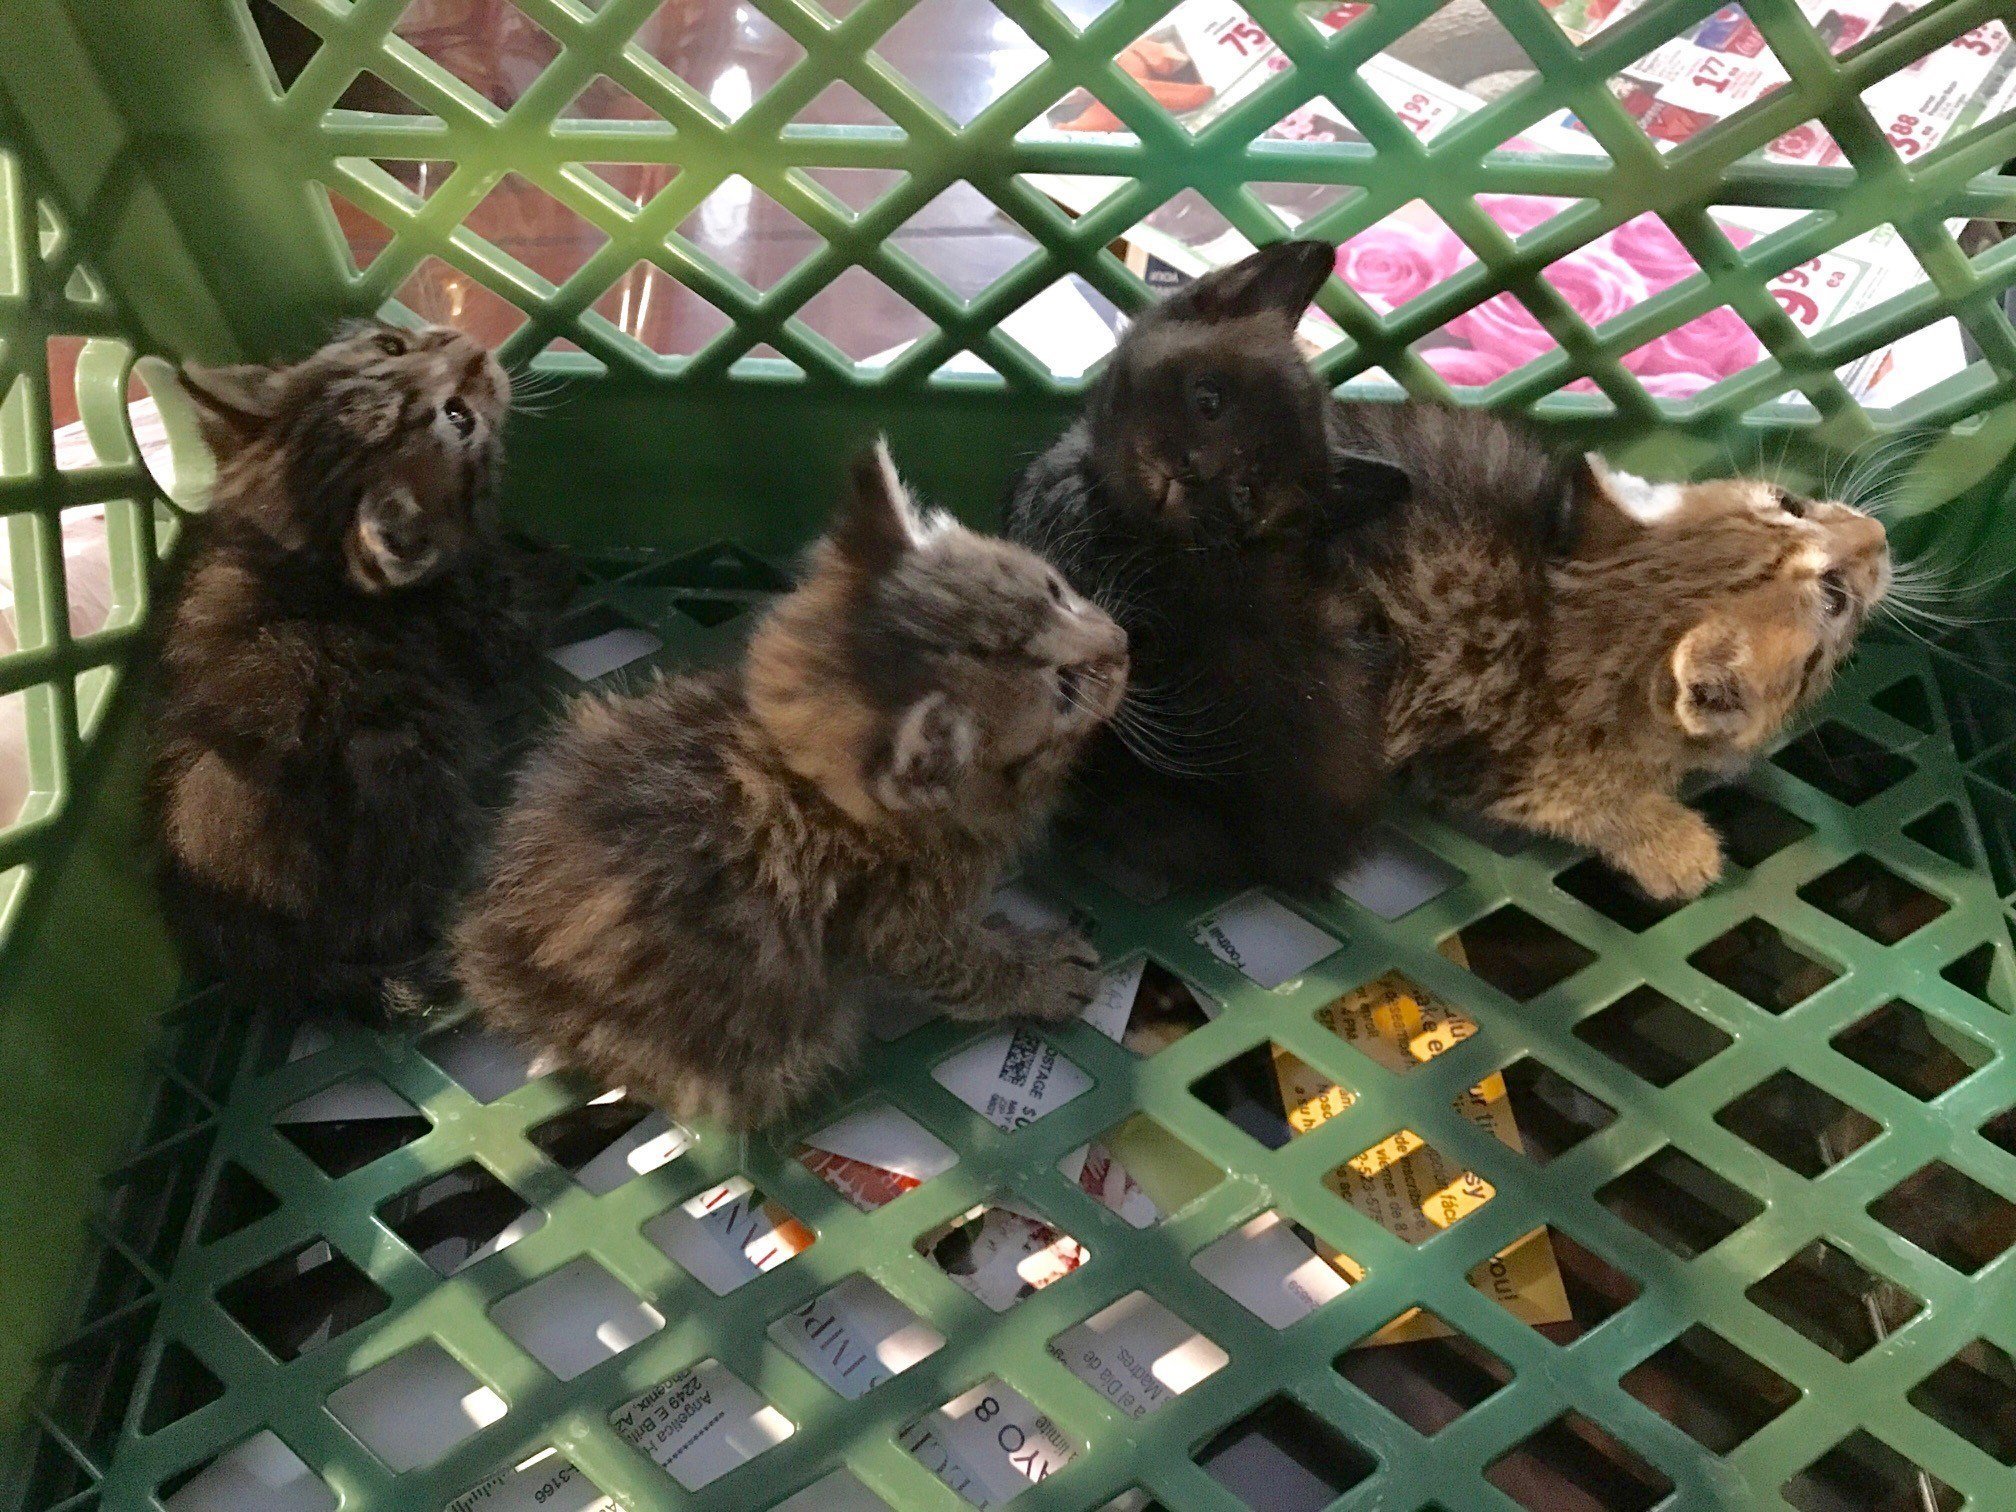 The handful of felines is expected to be OK. (Source: Phoenix Fire Department)